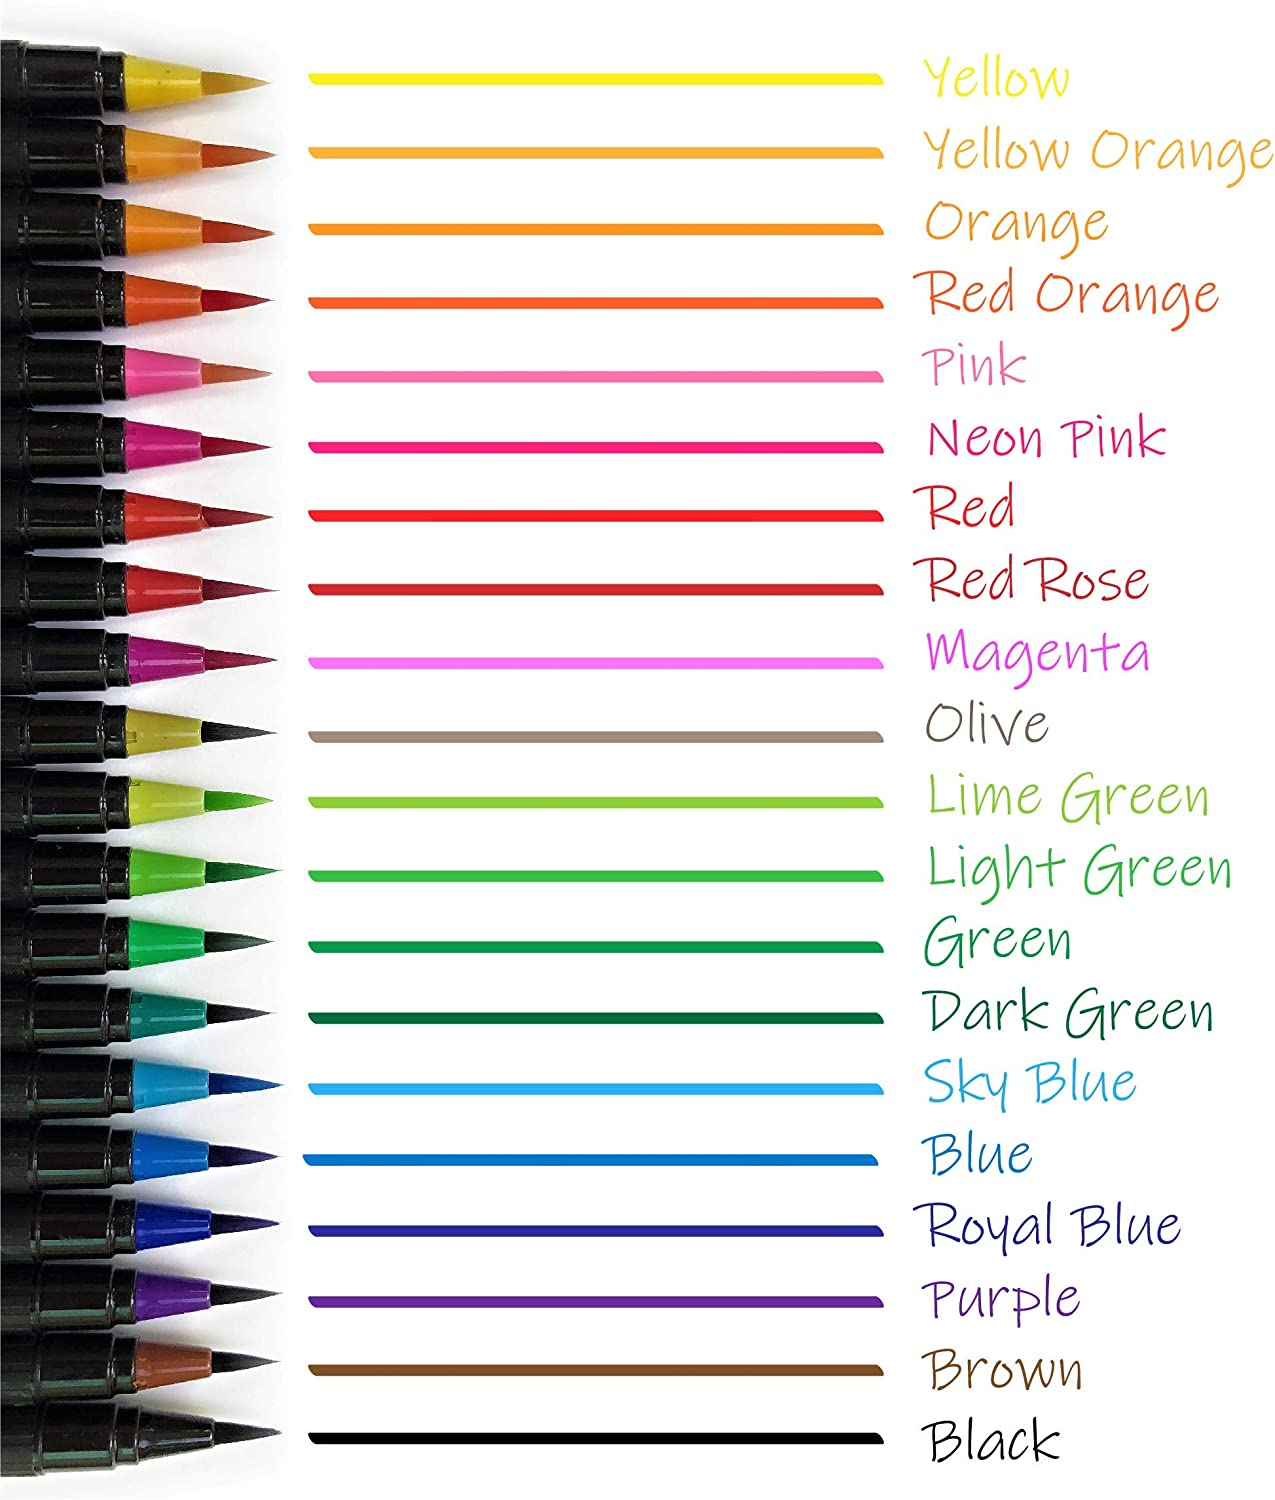 Watercolor Brush Pens Set Soft Tip for Art 20 Color Markers Non-Toxic Bonus Sketch Pad /& Refillable Water Pen Drawing Coloring Page Water Based Calligraphy Sketching and Paint Effects